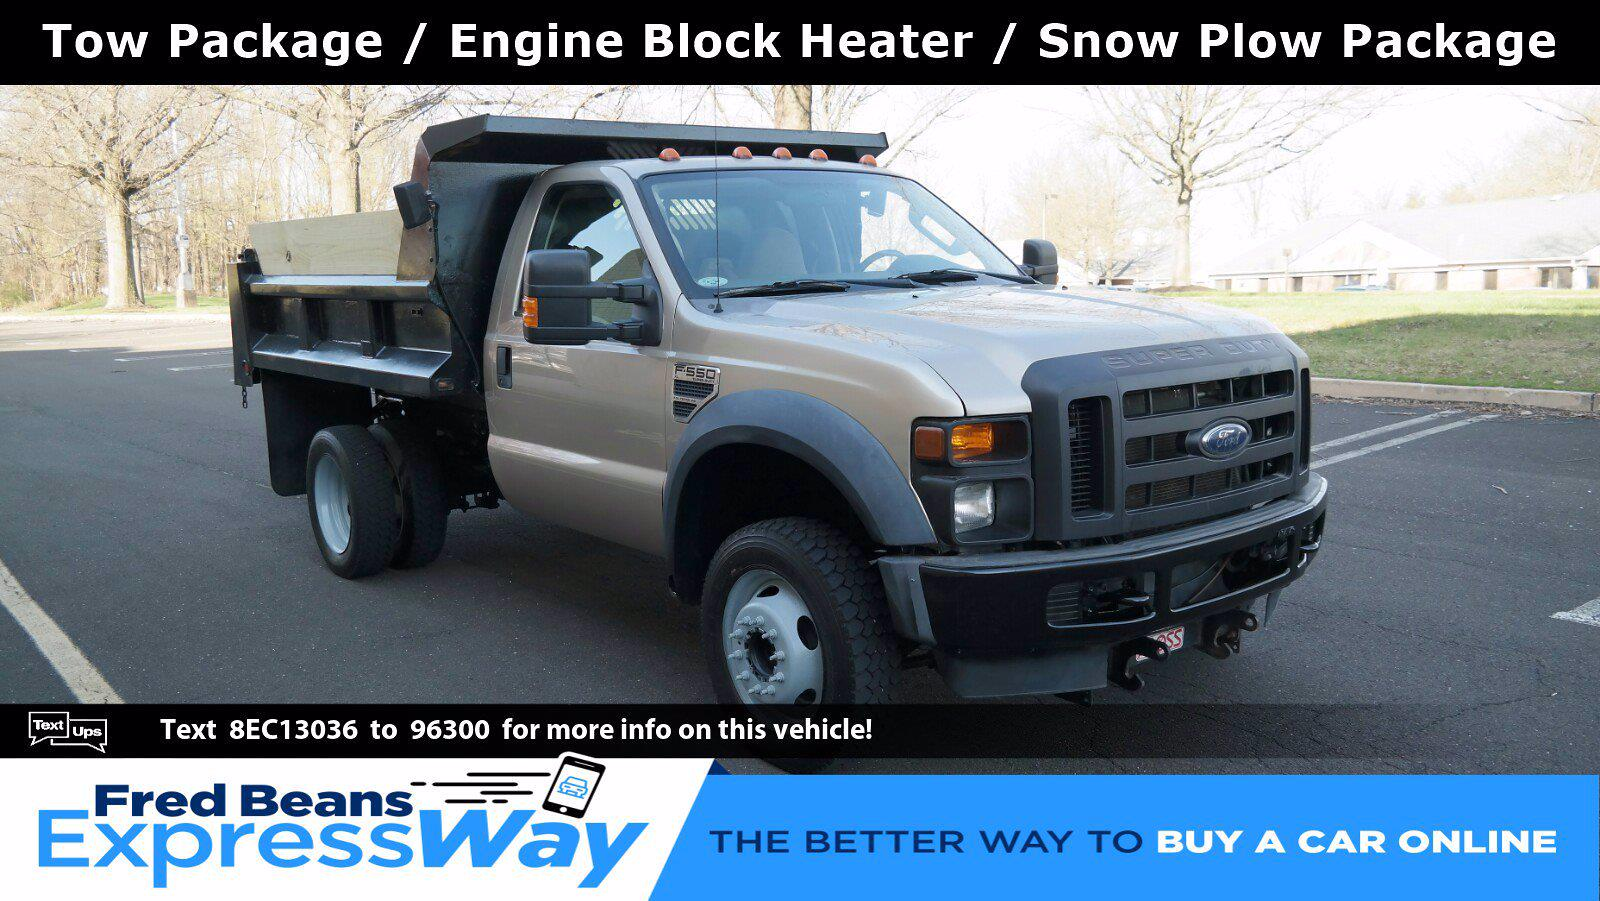 2008 Ford F-550 Regular Cab DRW 4x4, Dump Body #FL1138J - photo 1